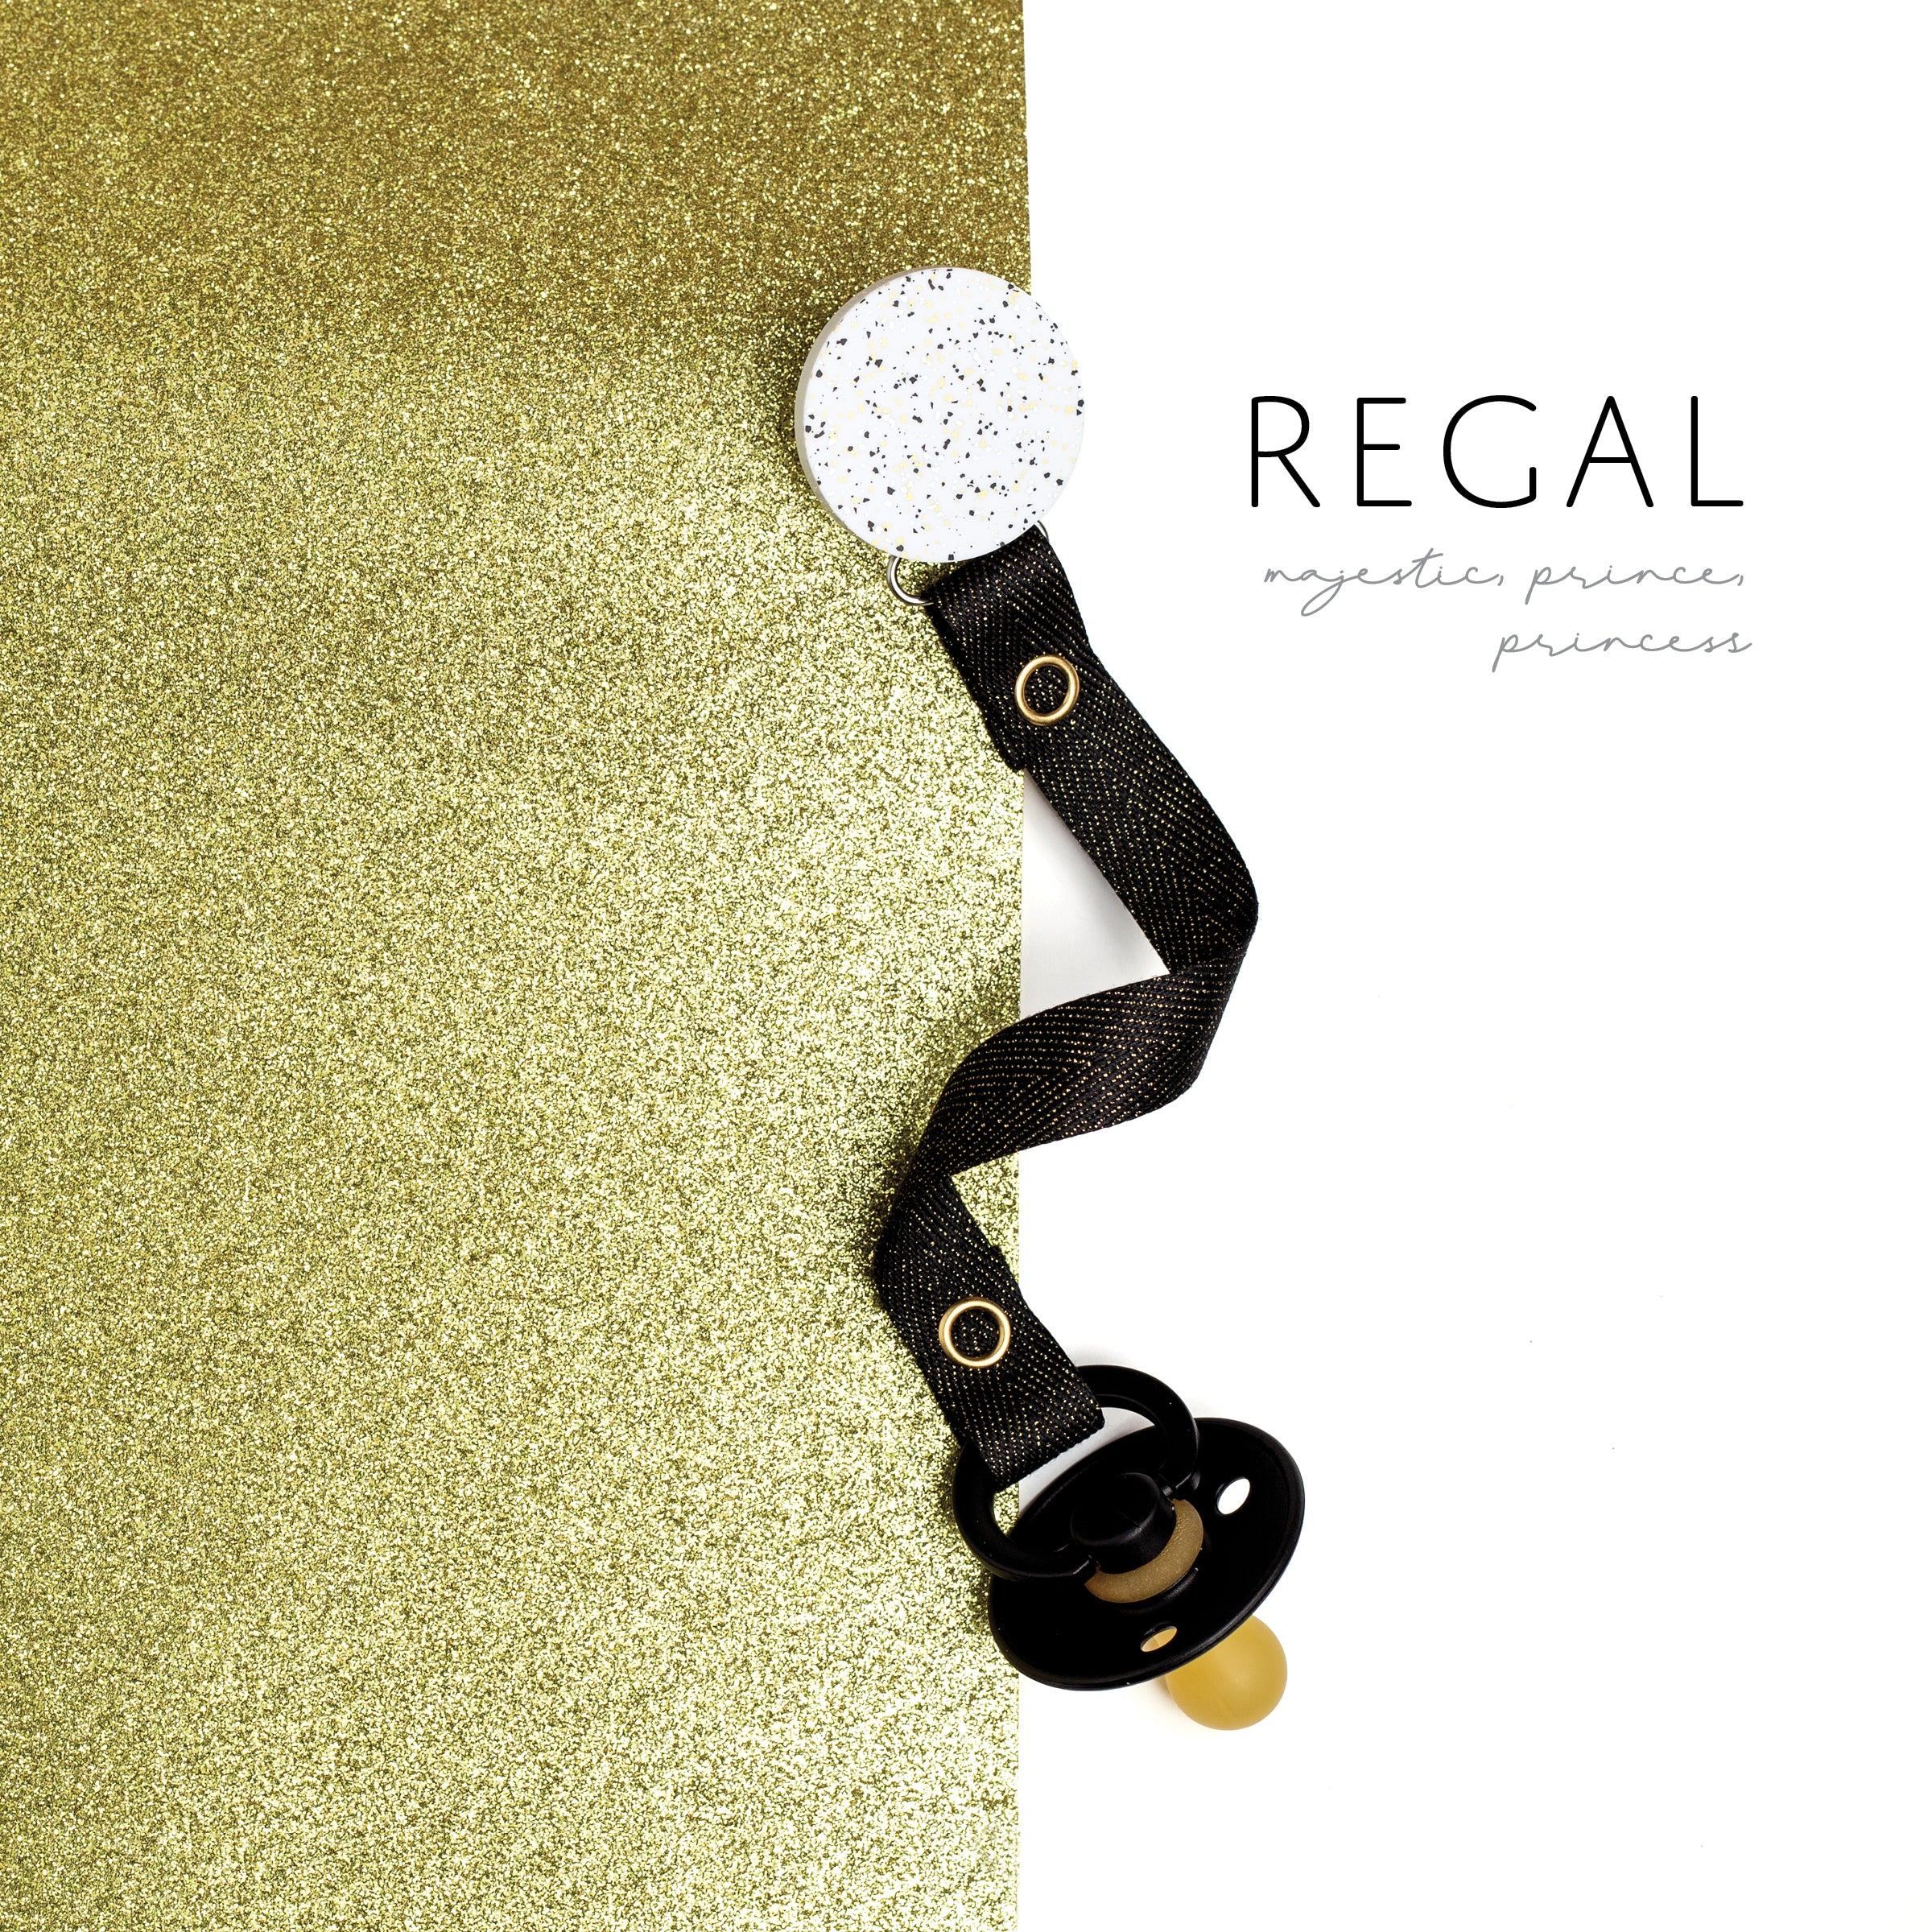 Classy Paci Speckled metallic gold black silver circle pacifier clip